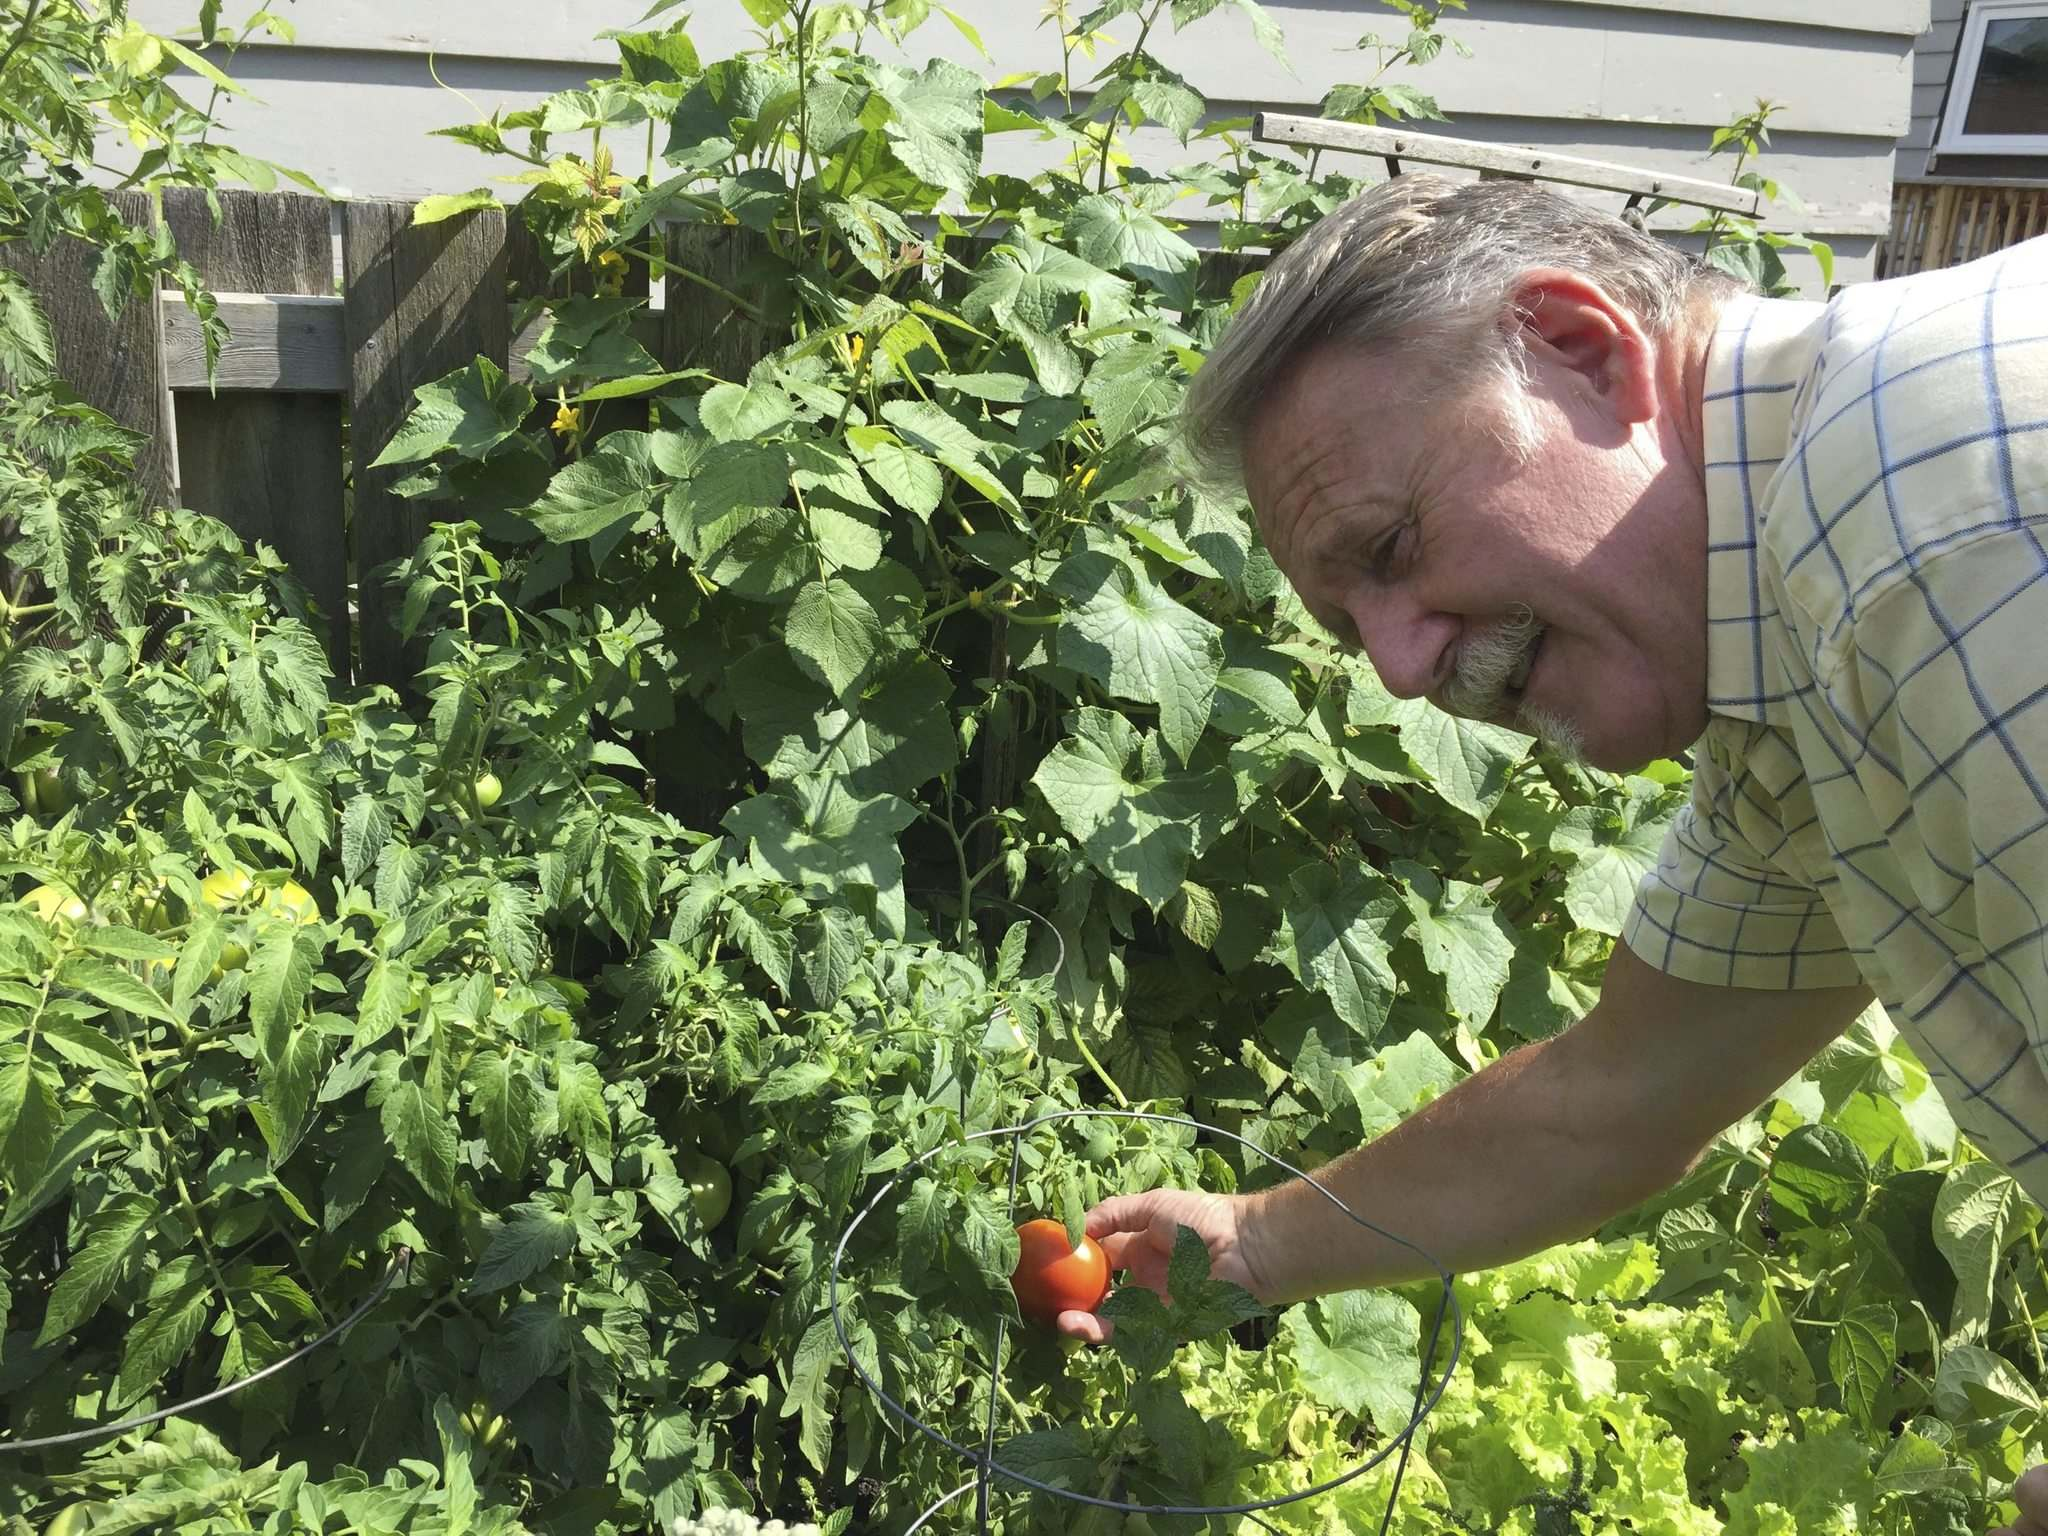 BEN WALDMAN / WINNIPEG FREE PRESS</p><p>Gary Tessier and his wife have kept a St. Boniface-area backyard garden for 35 years, and are now concerned about eating their own produce.</p>